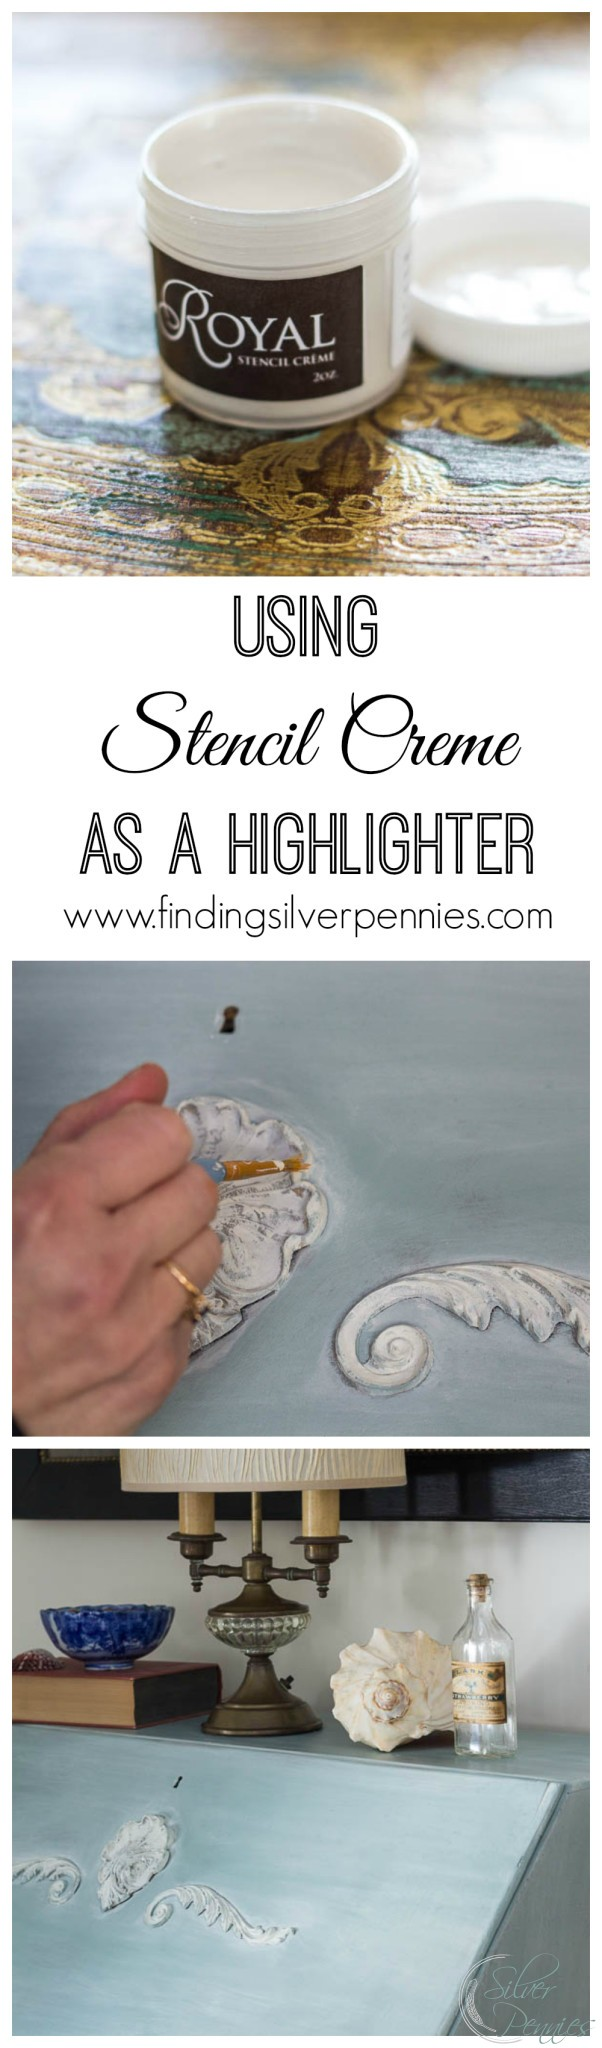 Using Stencil Creme as a Highlighter